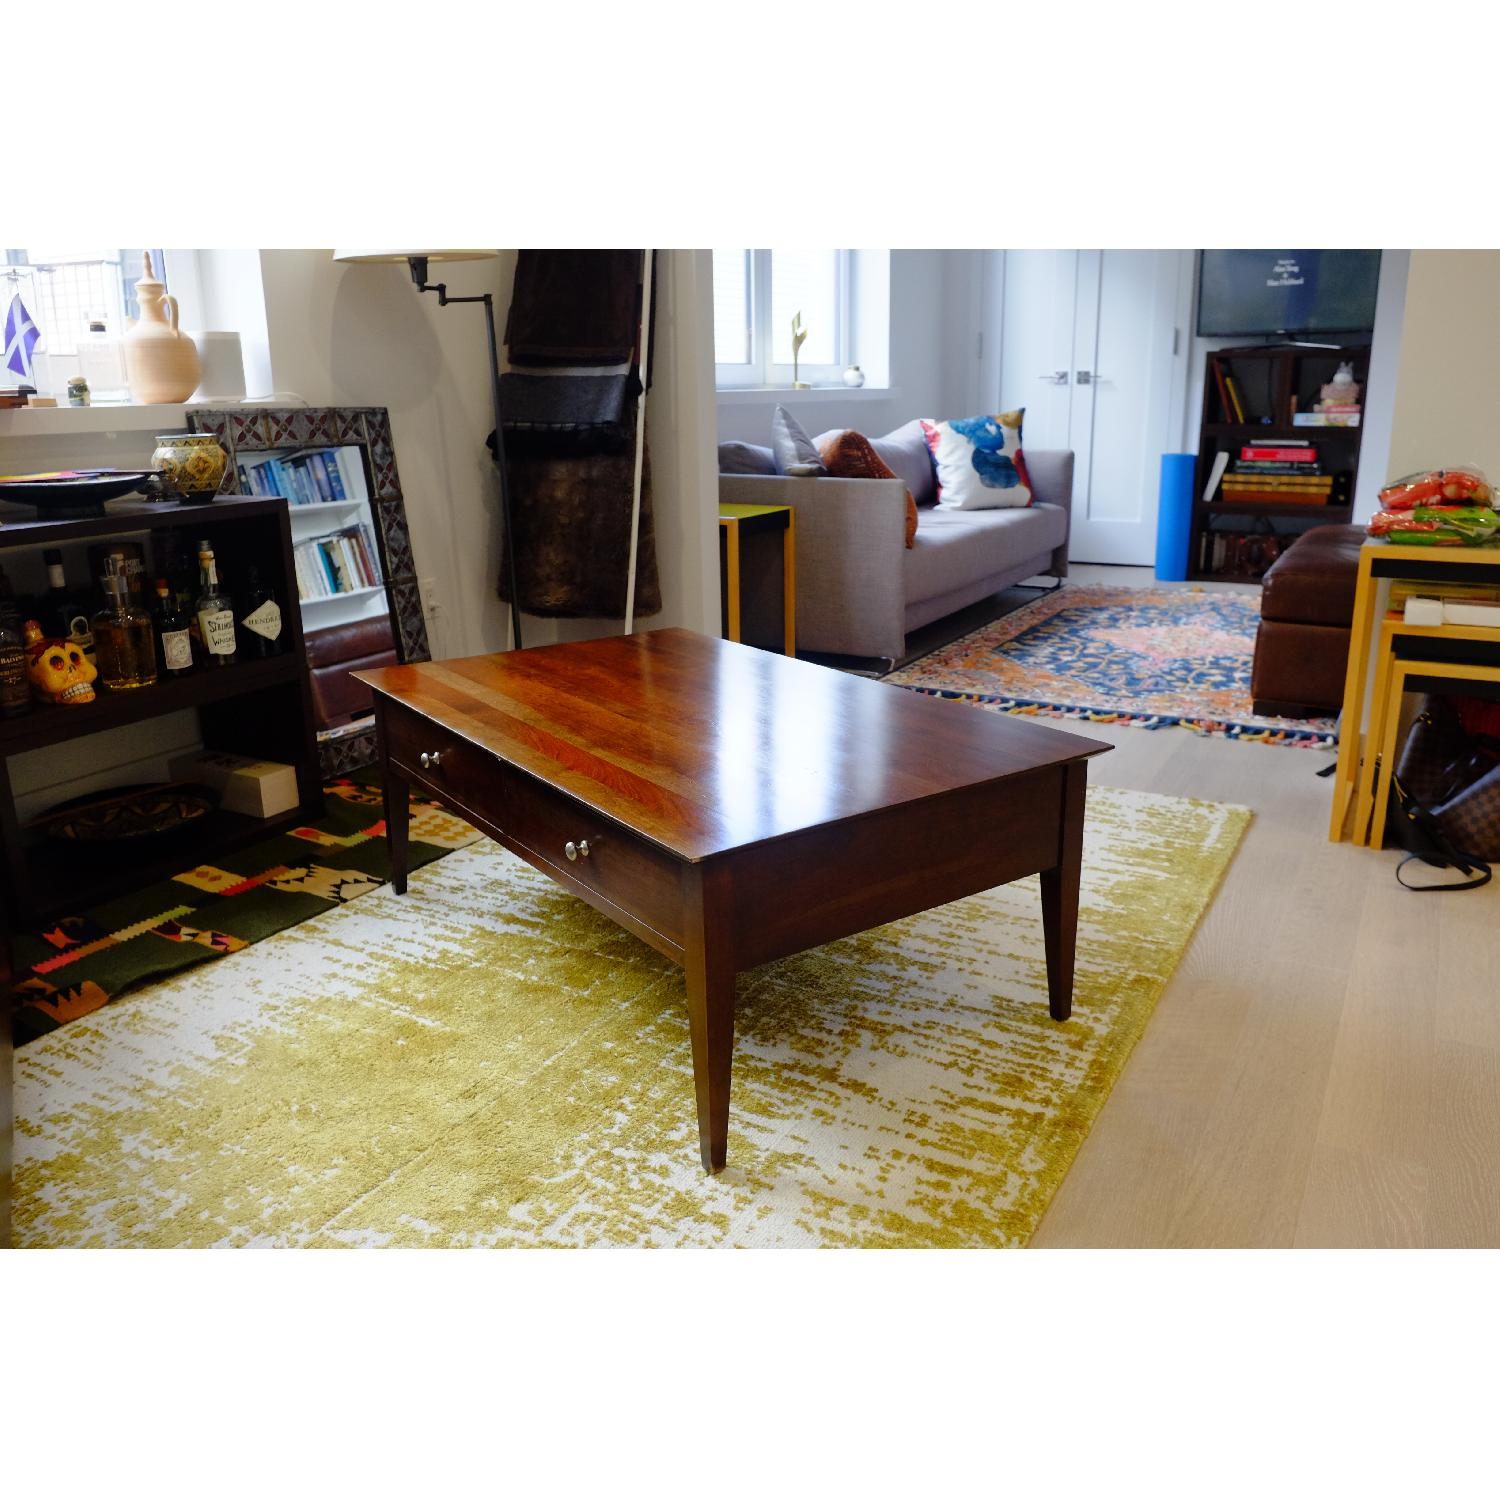 Ethan Allen Arts & Crafts Coffee Table-3